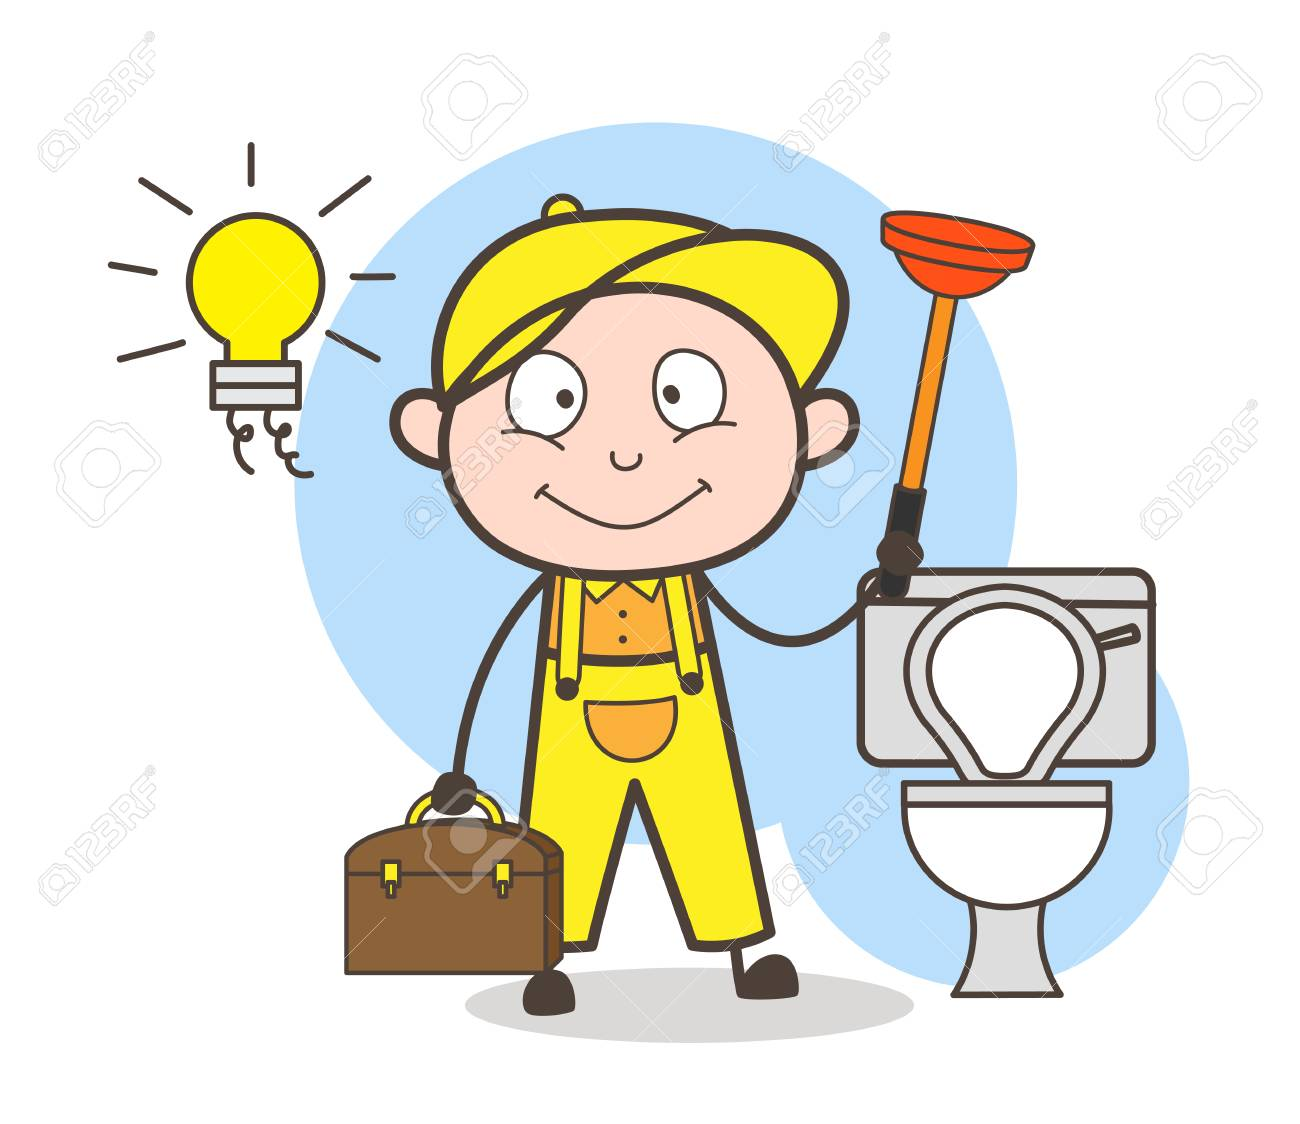 Cartoon Plumber With Plunger Cleaning Bathroom Vector Illustration Stock